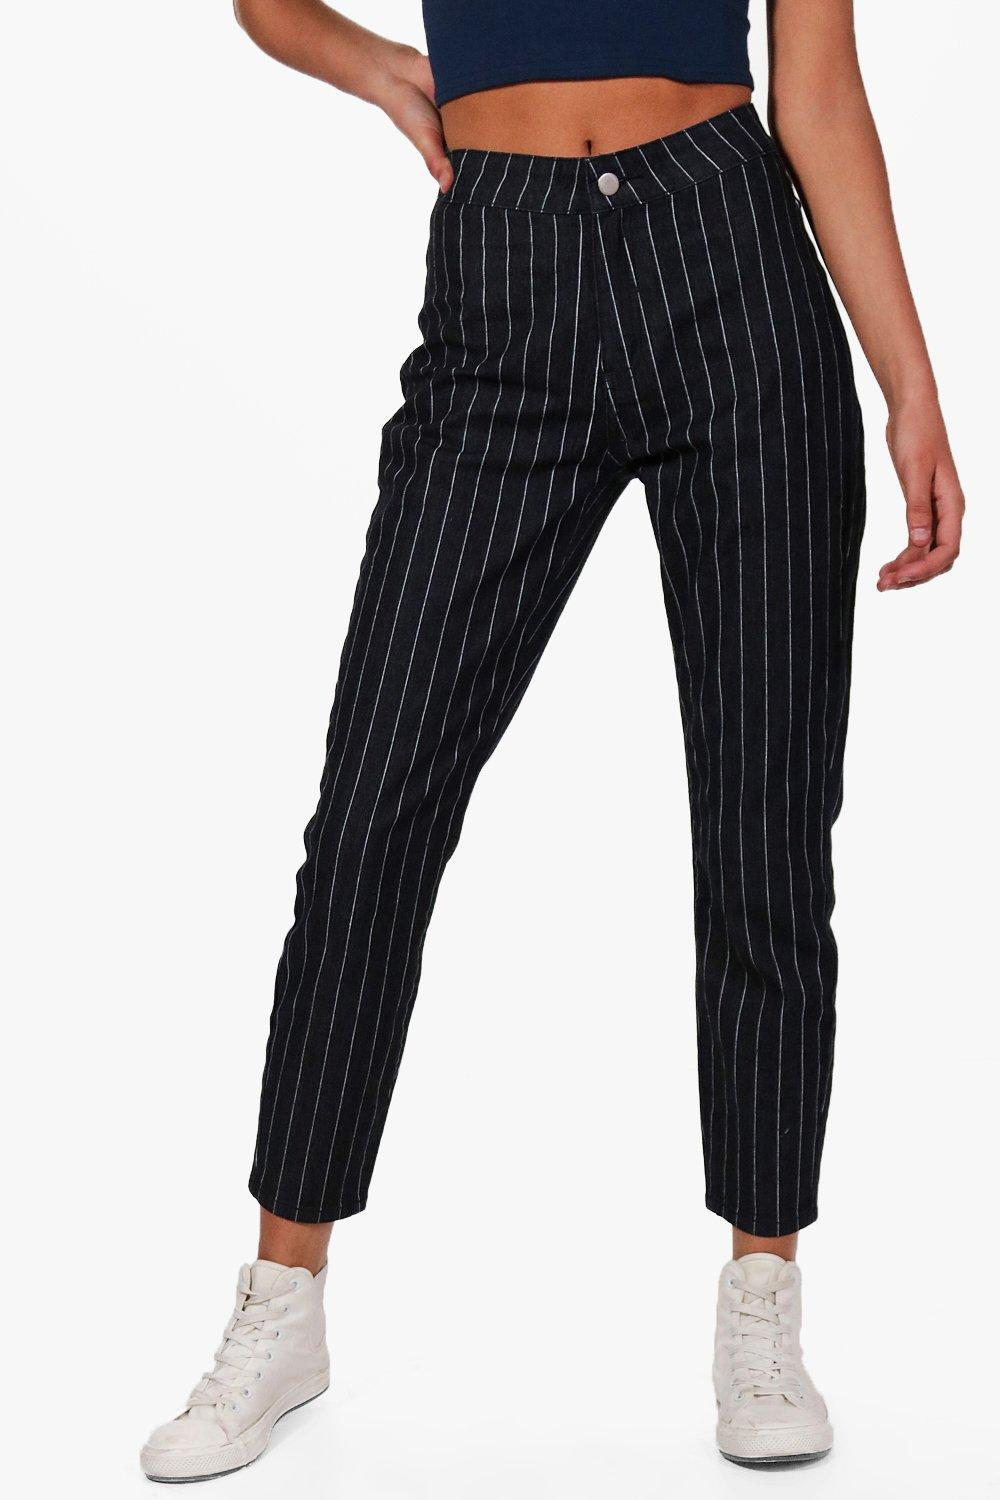 a1fa0195dd46 ... High Rise Stripe Skinny Tube Jeans - Lyst. Visit Boohoo. Tap to visit  site